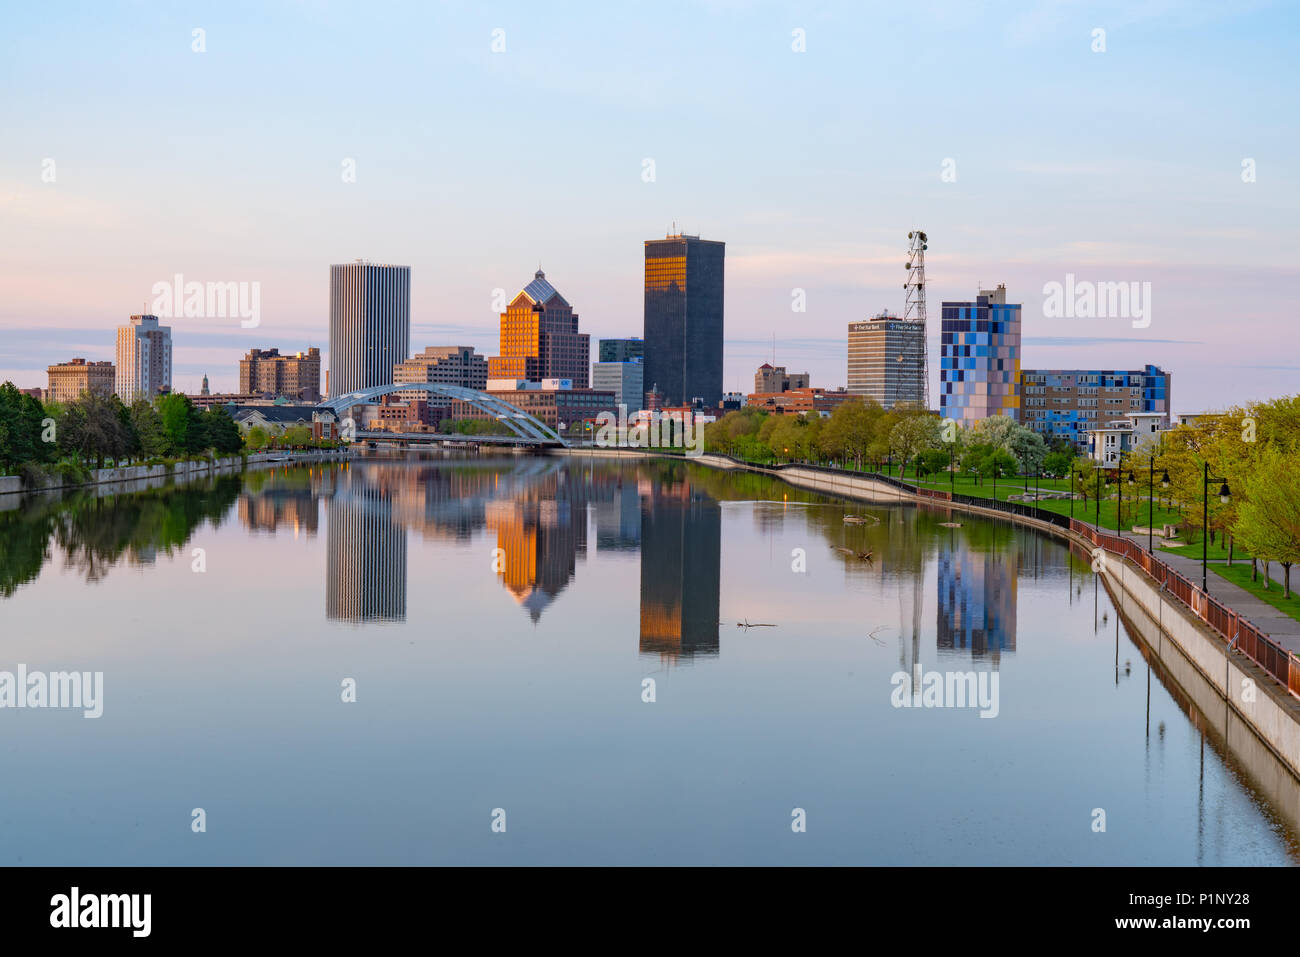 rochester ny may 14 2018 skyline of rochester new york along